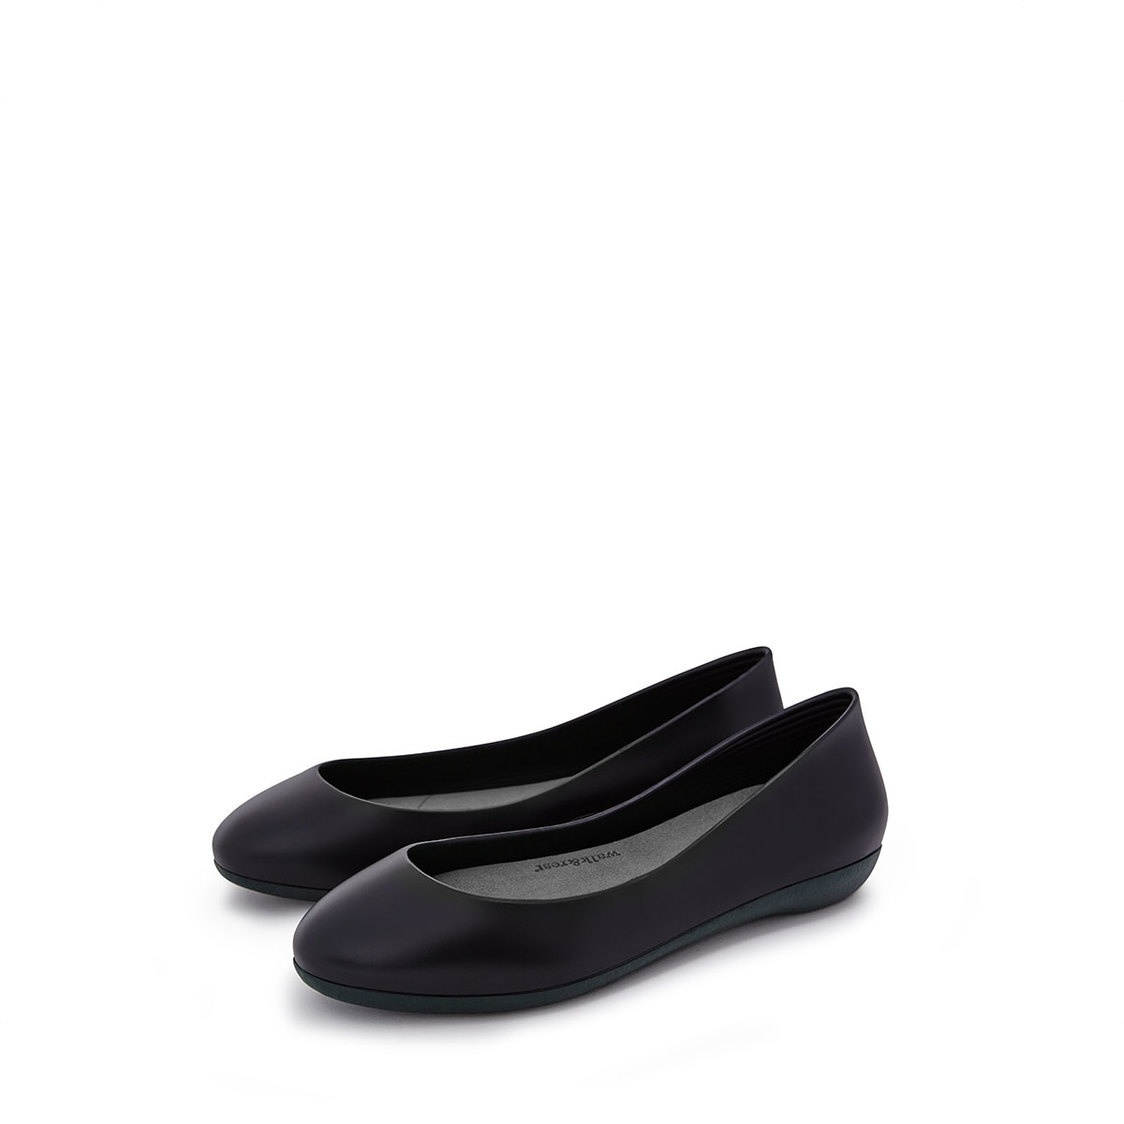 F2 Flat-Rounded Heel height 2cm Solid Black